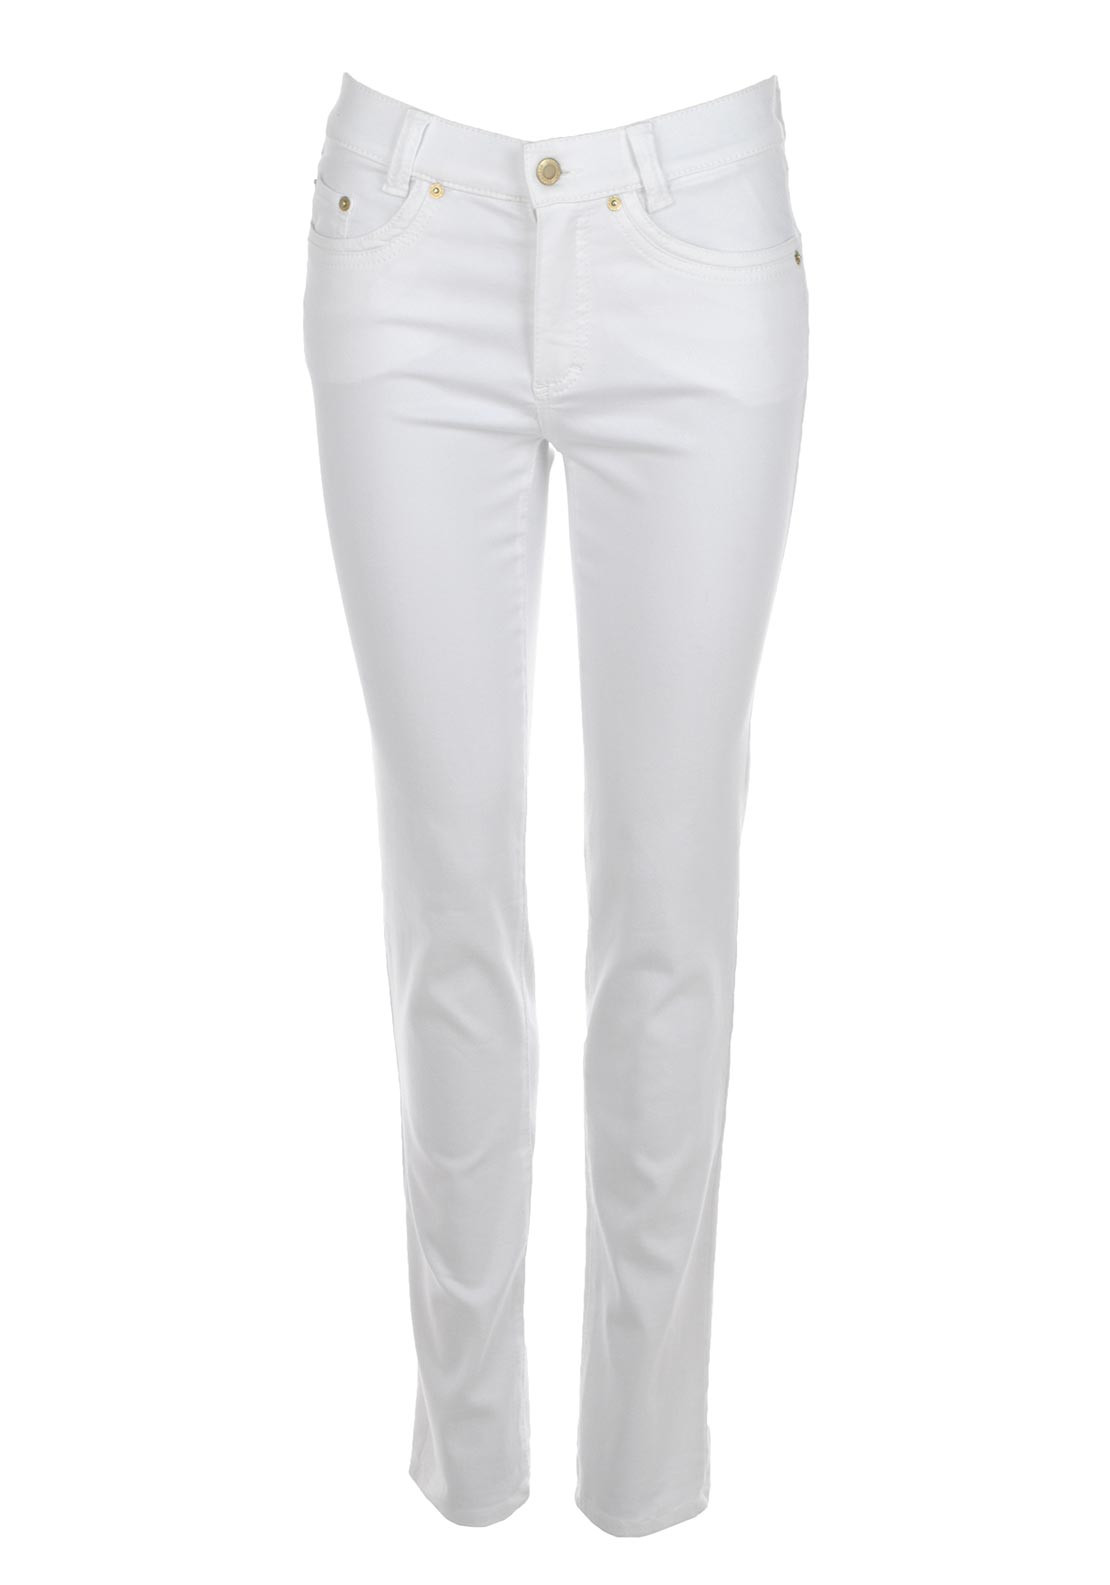 Anna Montana Angelika Super Stretch Slim Leg Jeans, White